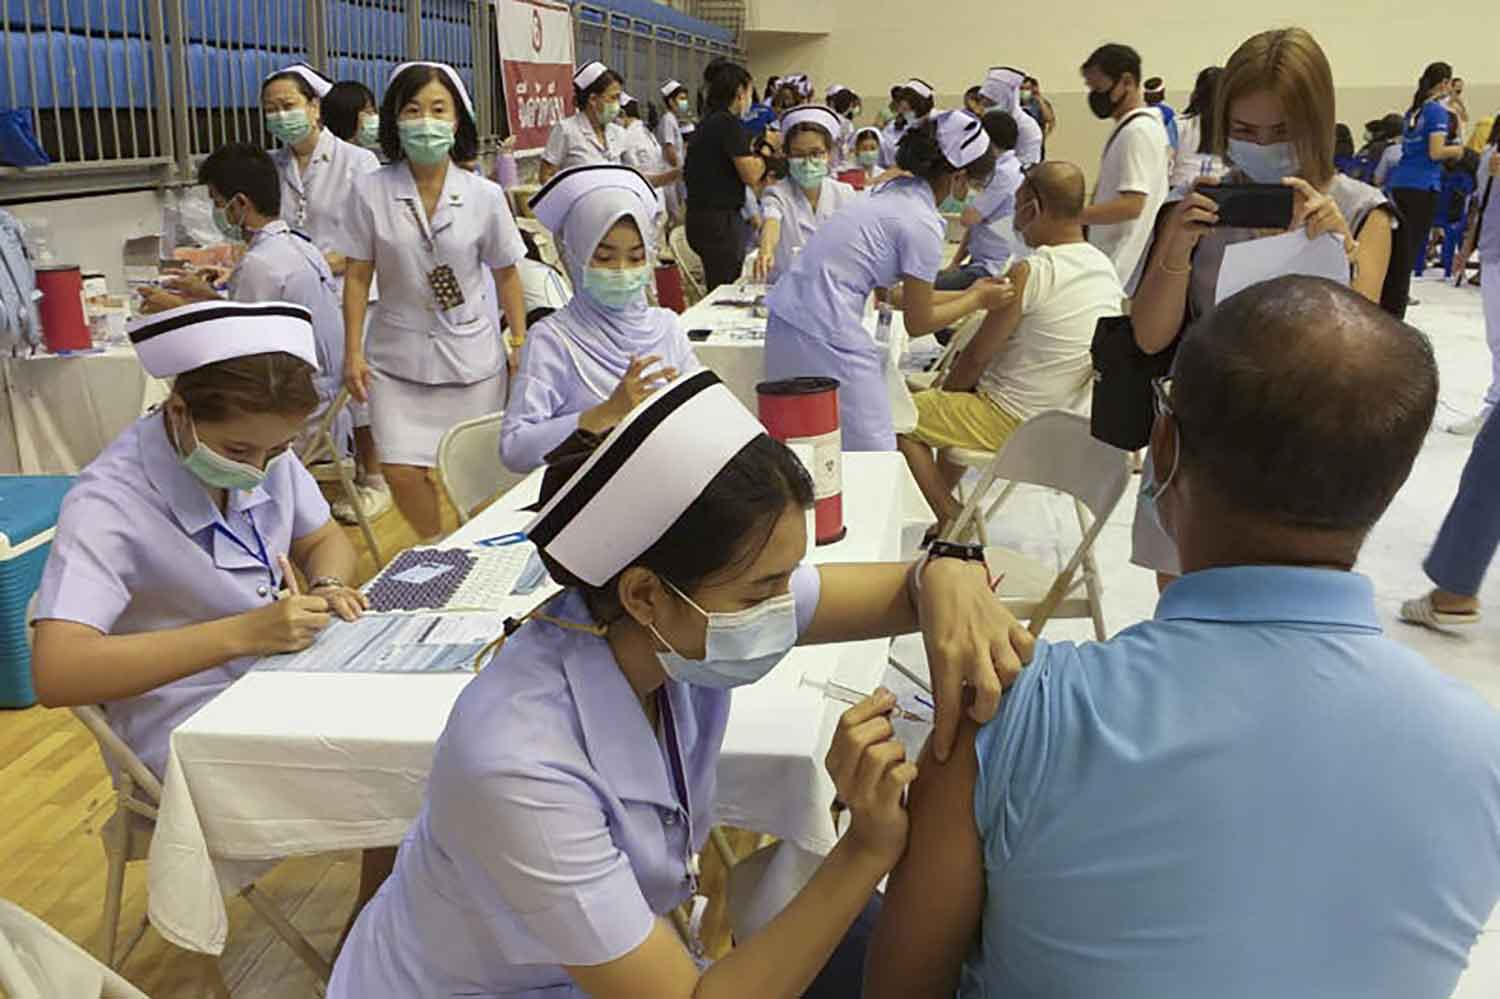 People queue for Covid-19 vaccine inoculations at Saphan Hin gymnasium in Phuket province on Thursday, when 58 new cases were reported nationwide. (Photo: Achadtaya Chuenniran)